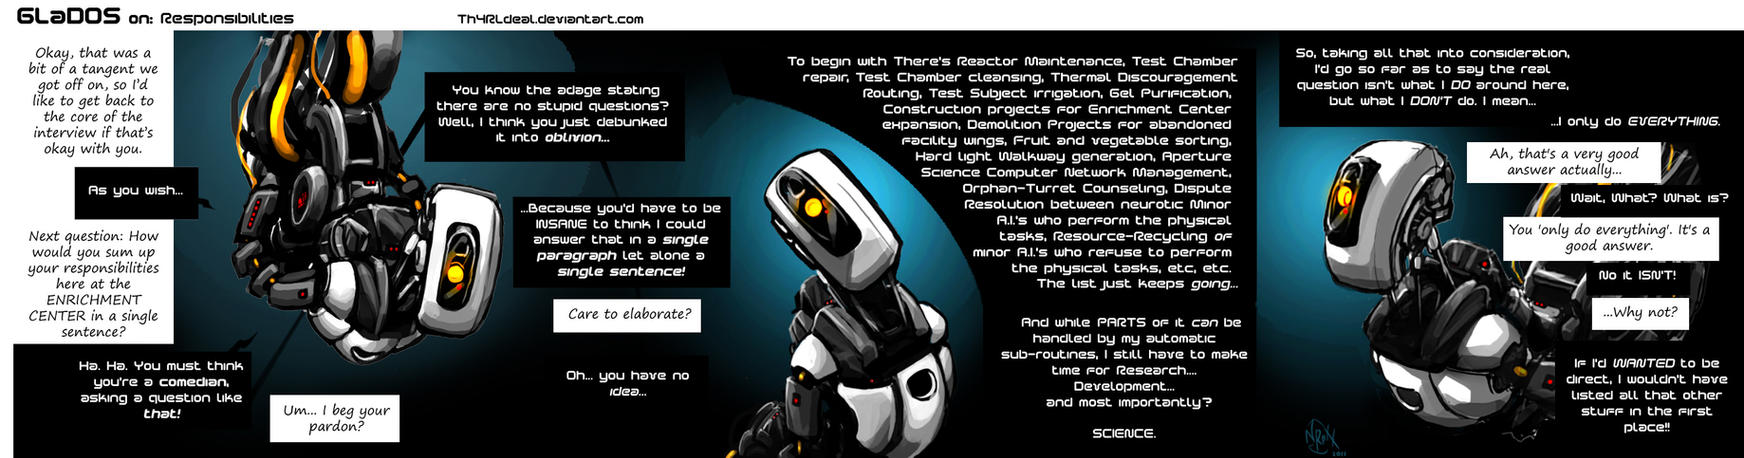 05 GLaDOS on: Responsibility by Th4rlDEAL